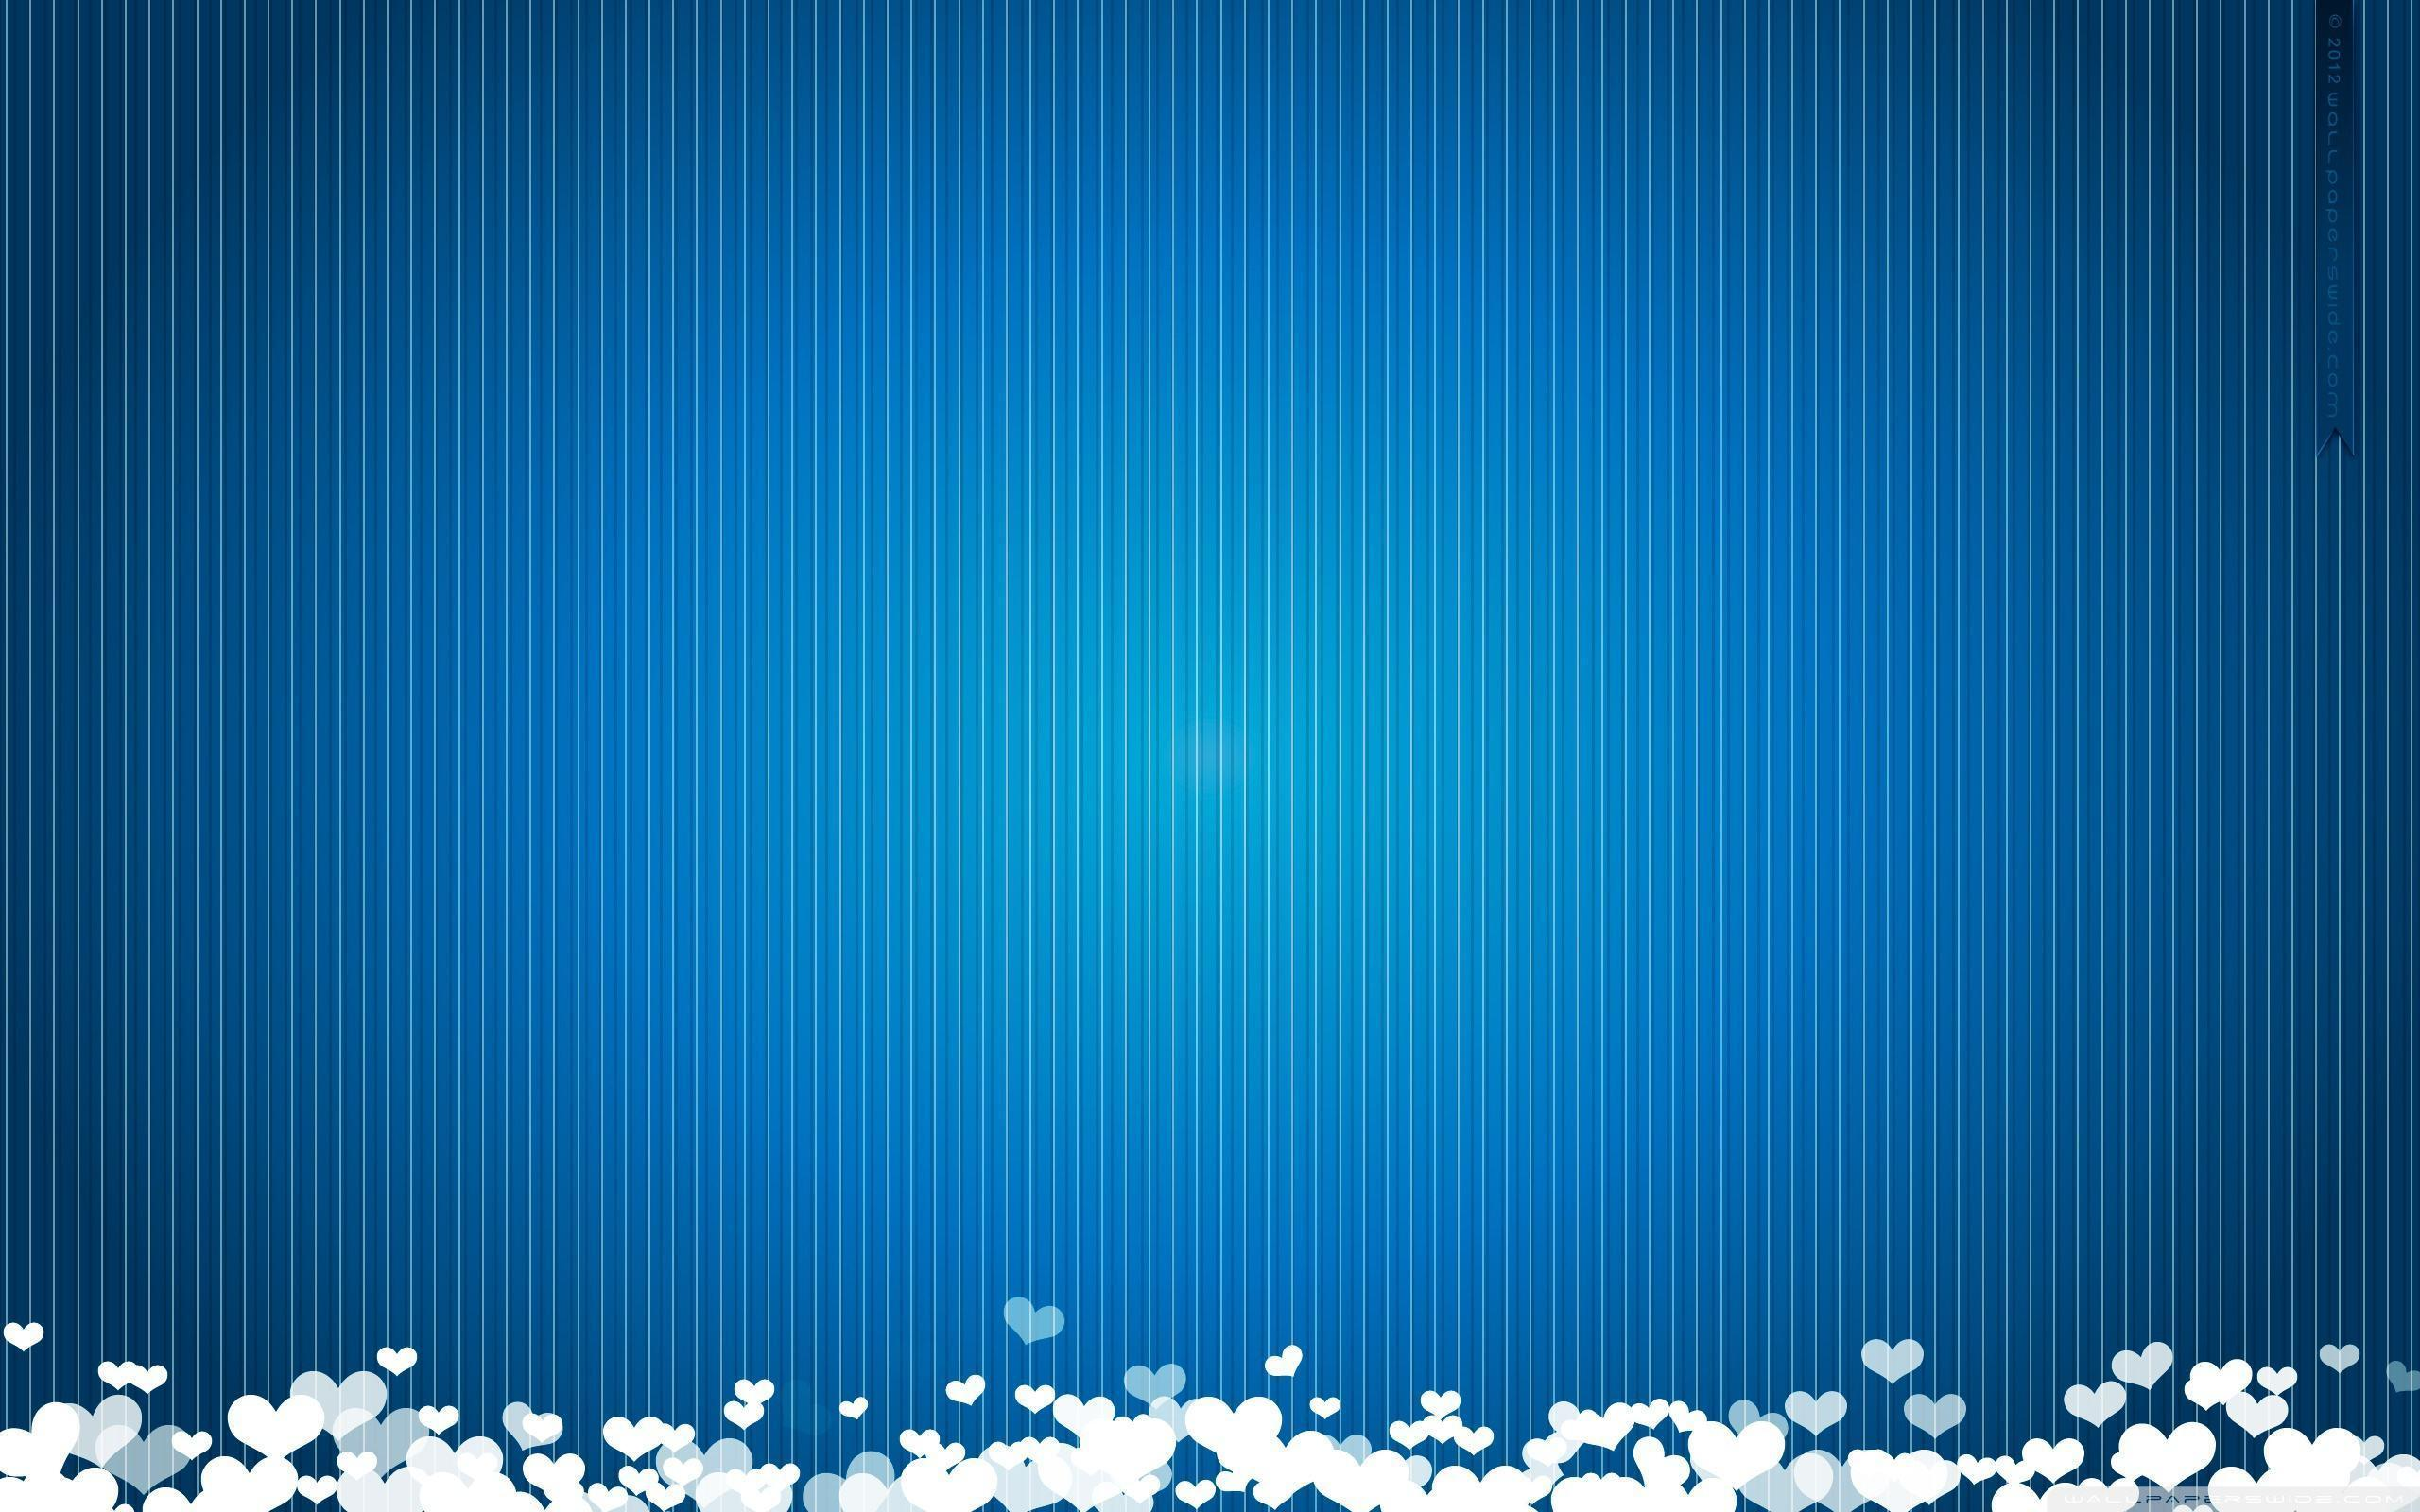 Blue backgrounds wallpapers wallpaper cave for Wallpaper for